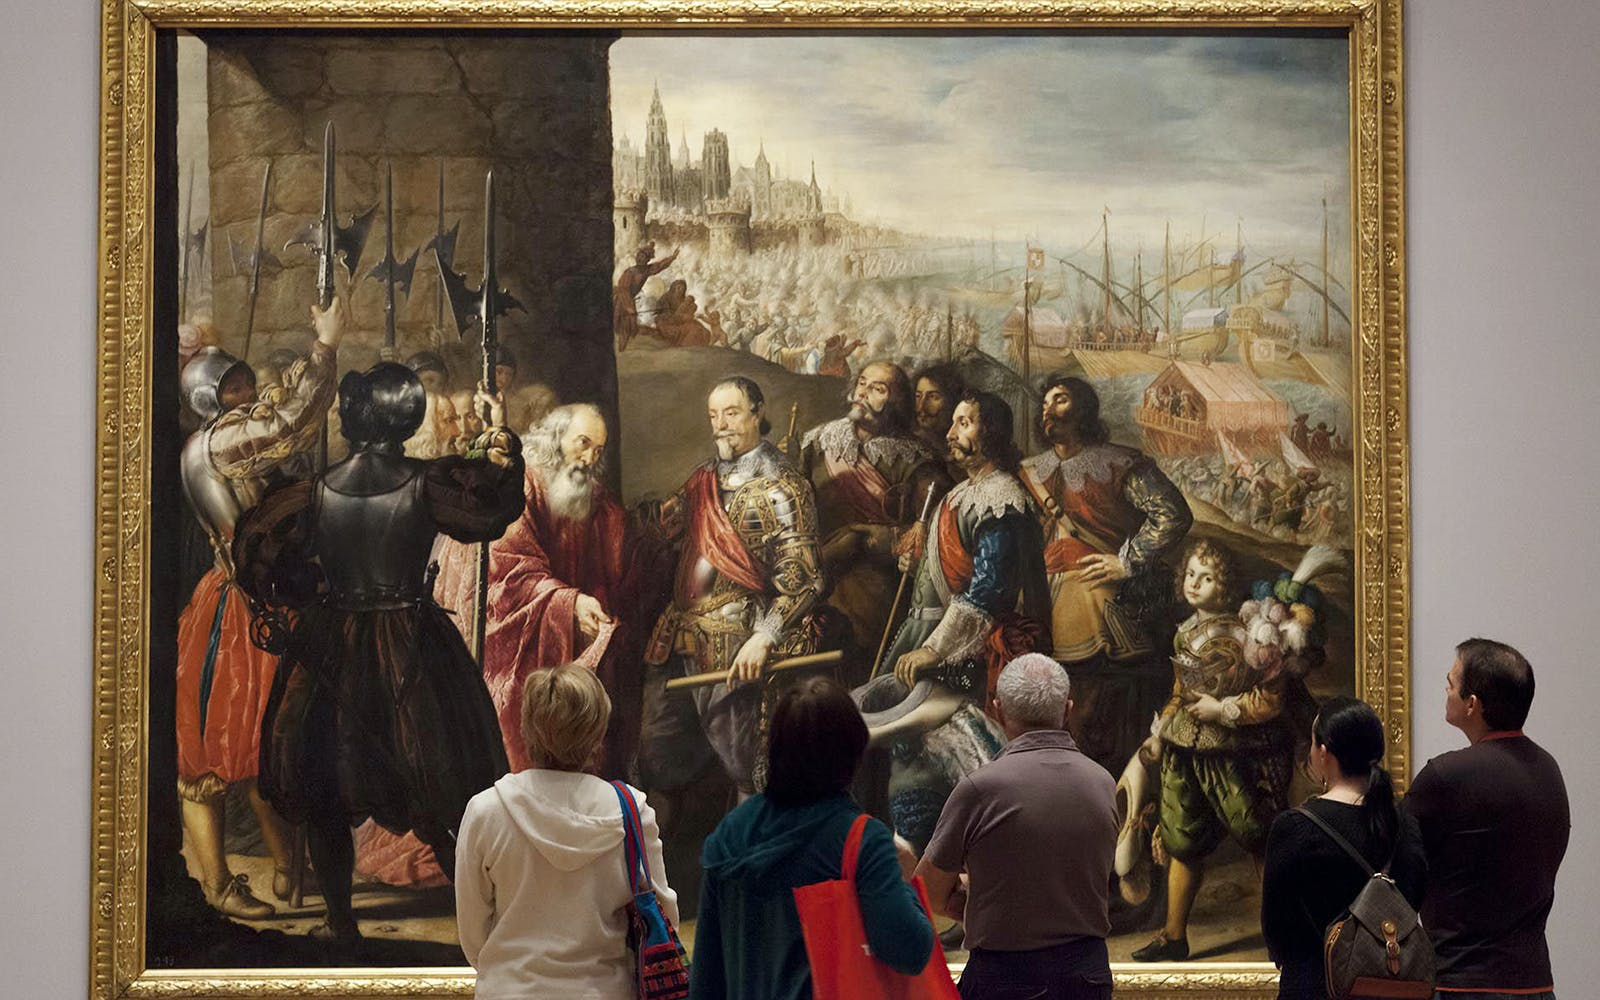 skip the line tickets to prado museum-2